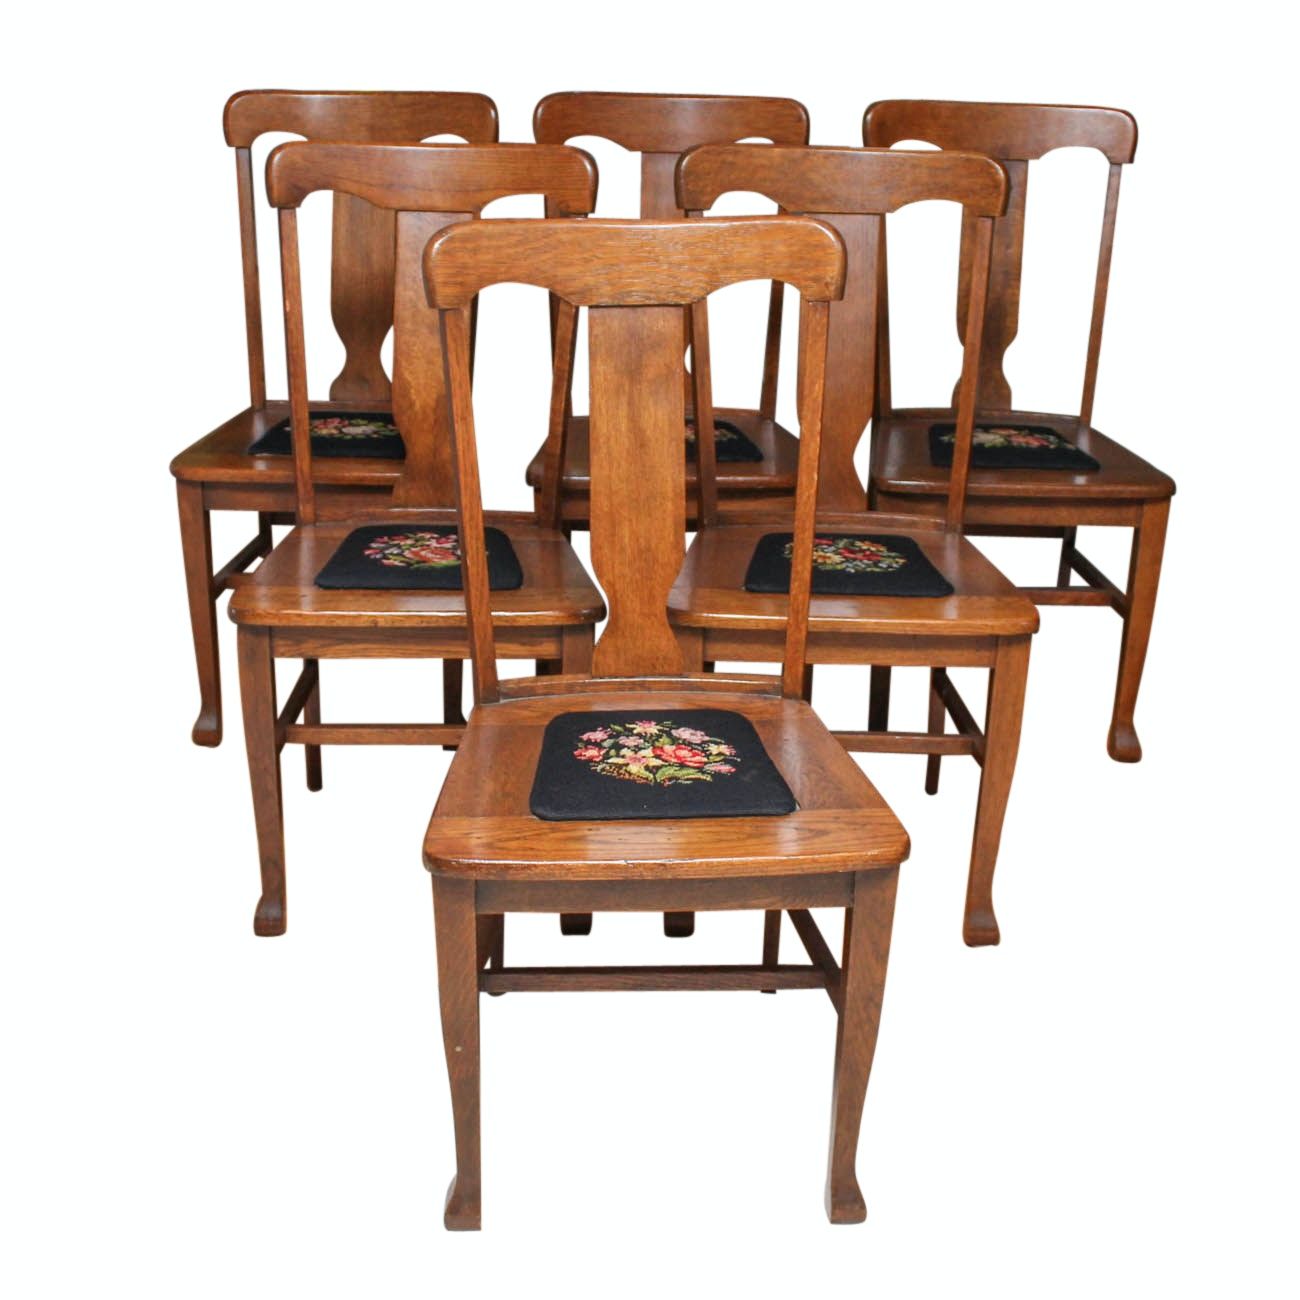 Antique Dining Chairs with Needlepoint Seats